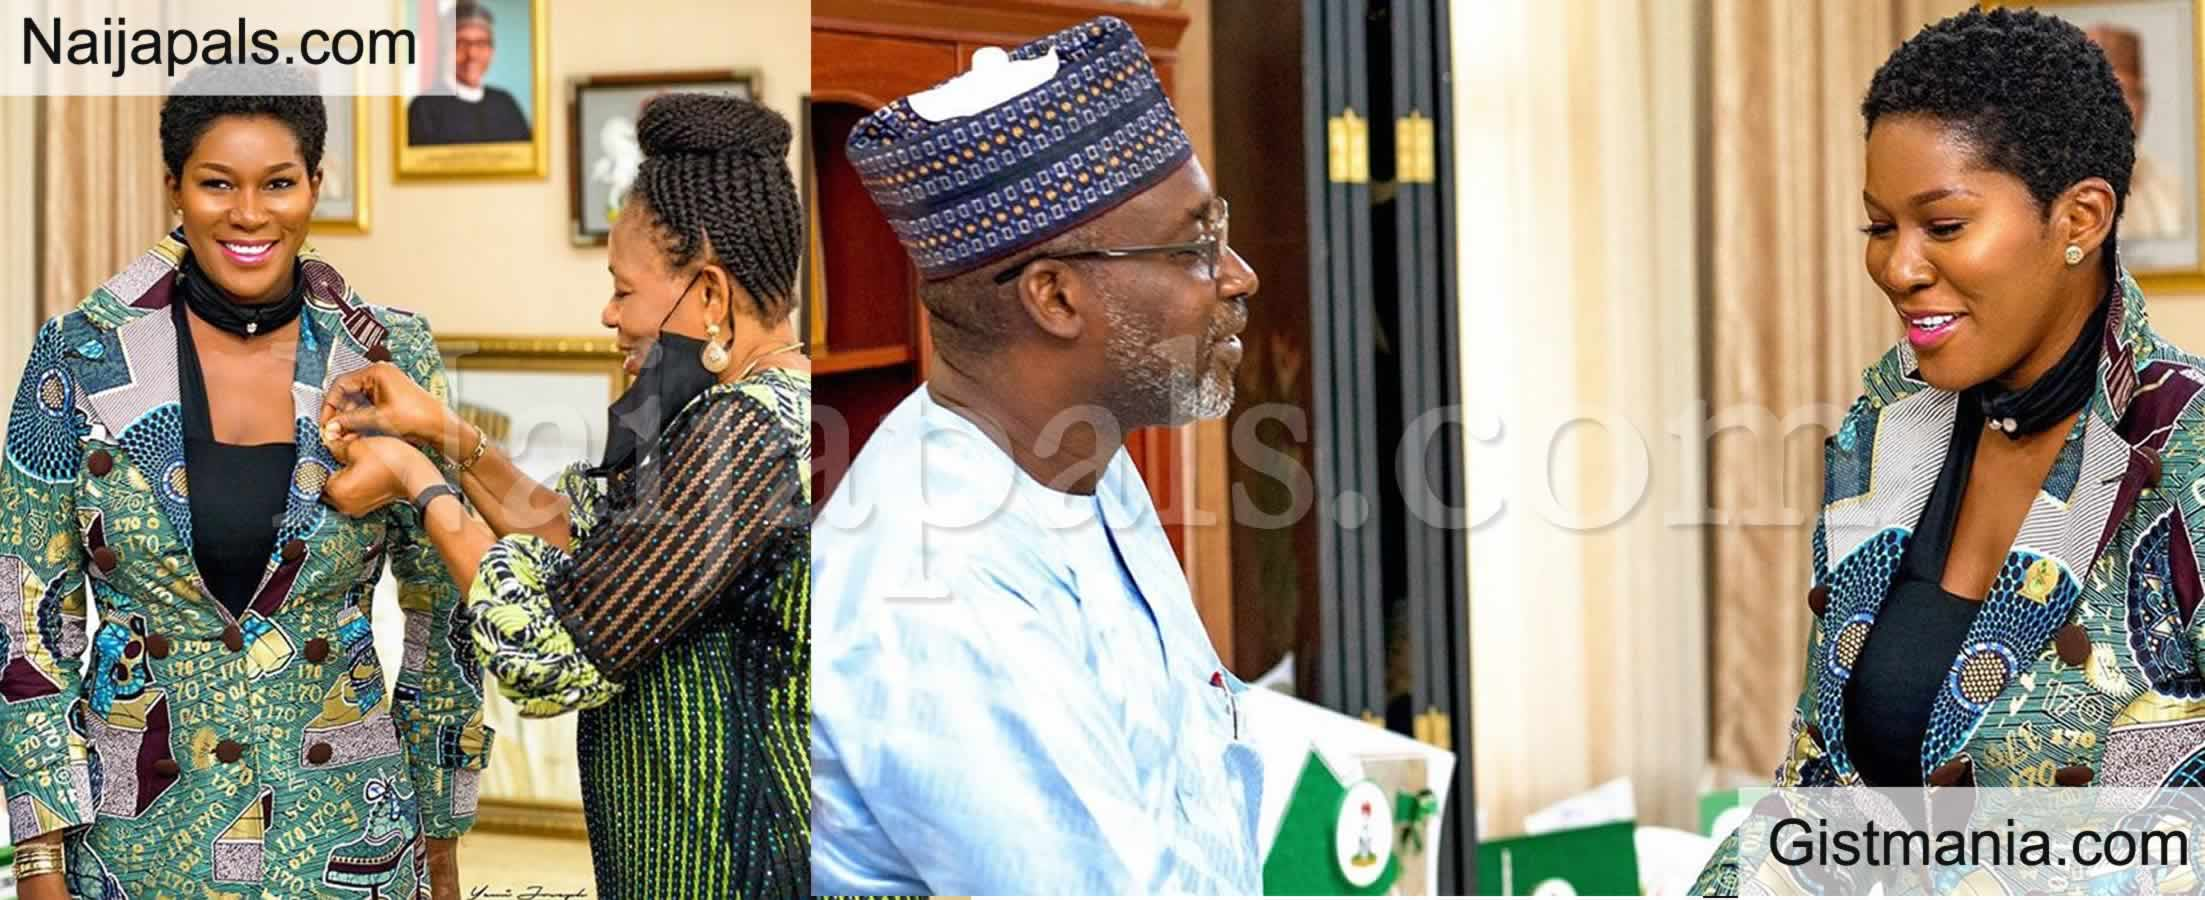 <img alt='.' class='lazyload' data-src='https://img.gistmania.com/emot/thumbs_up.gif' /> PHOTOS: <b>Nollywood Actress Stephanie Linus Gets New Appointment With Buhari's Government</b>